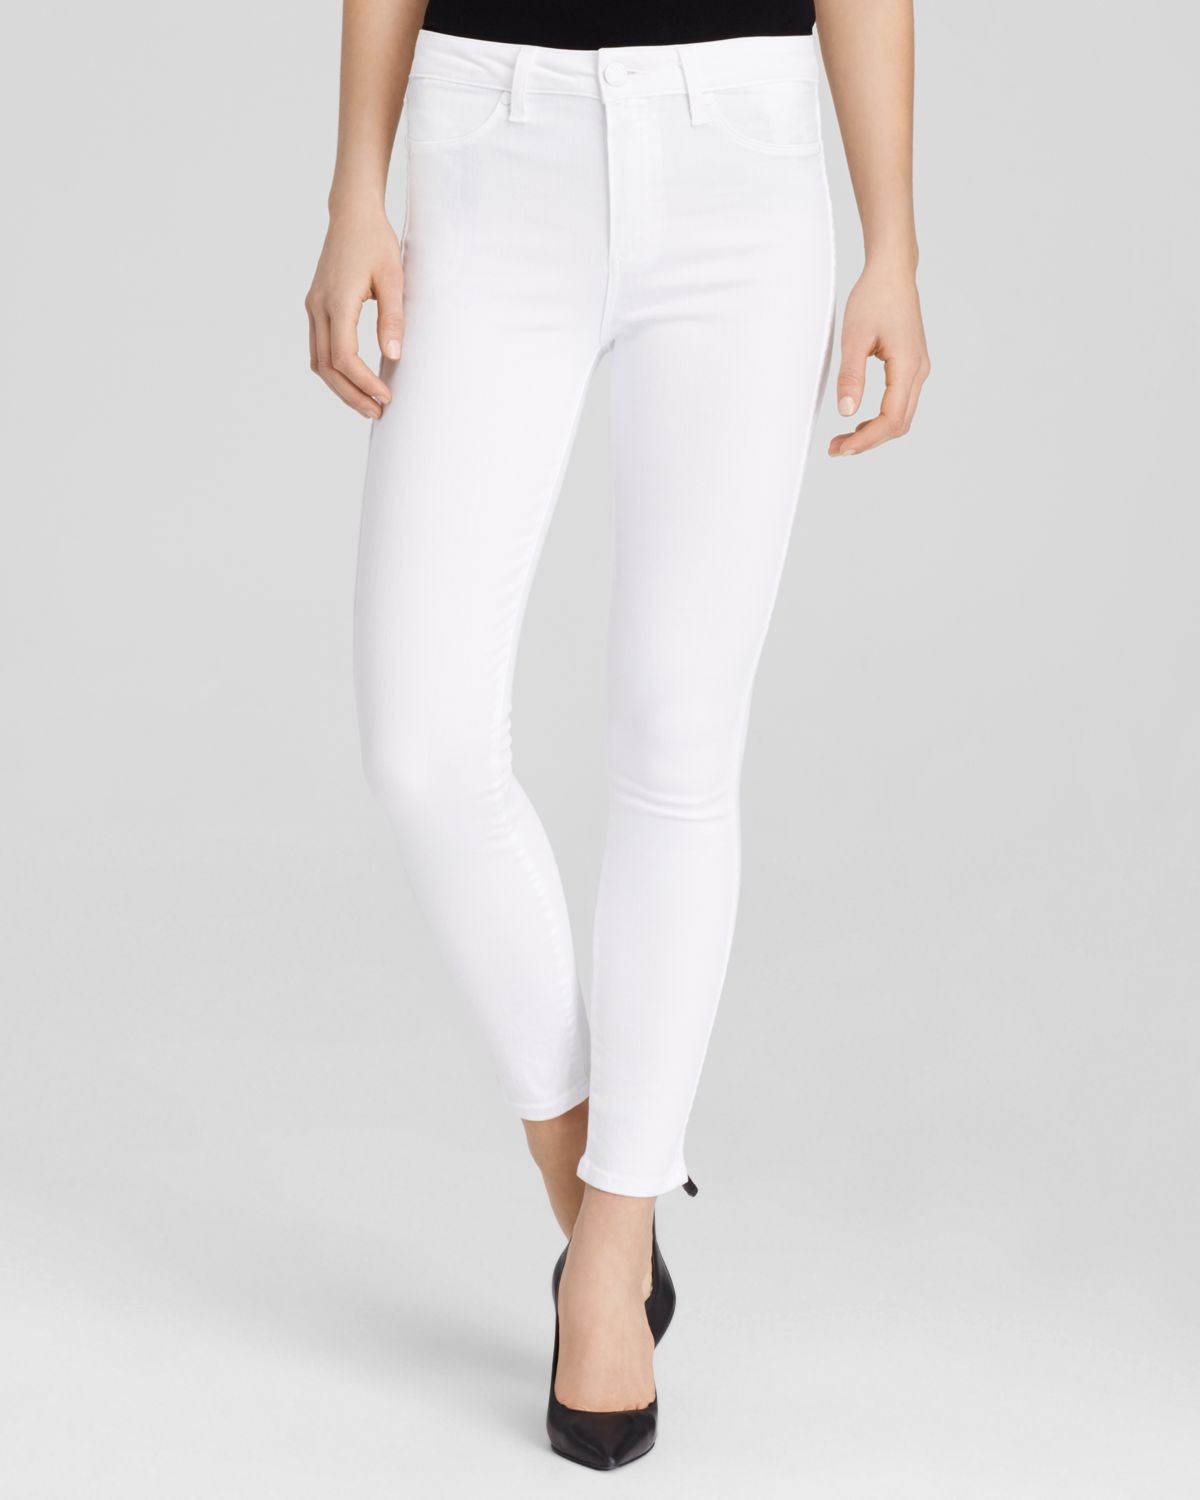 Paige Hoxton High Rise Ankle Jeans In Ultra White in White | Lyst